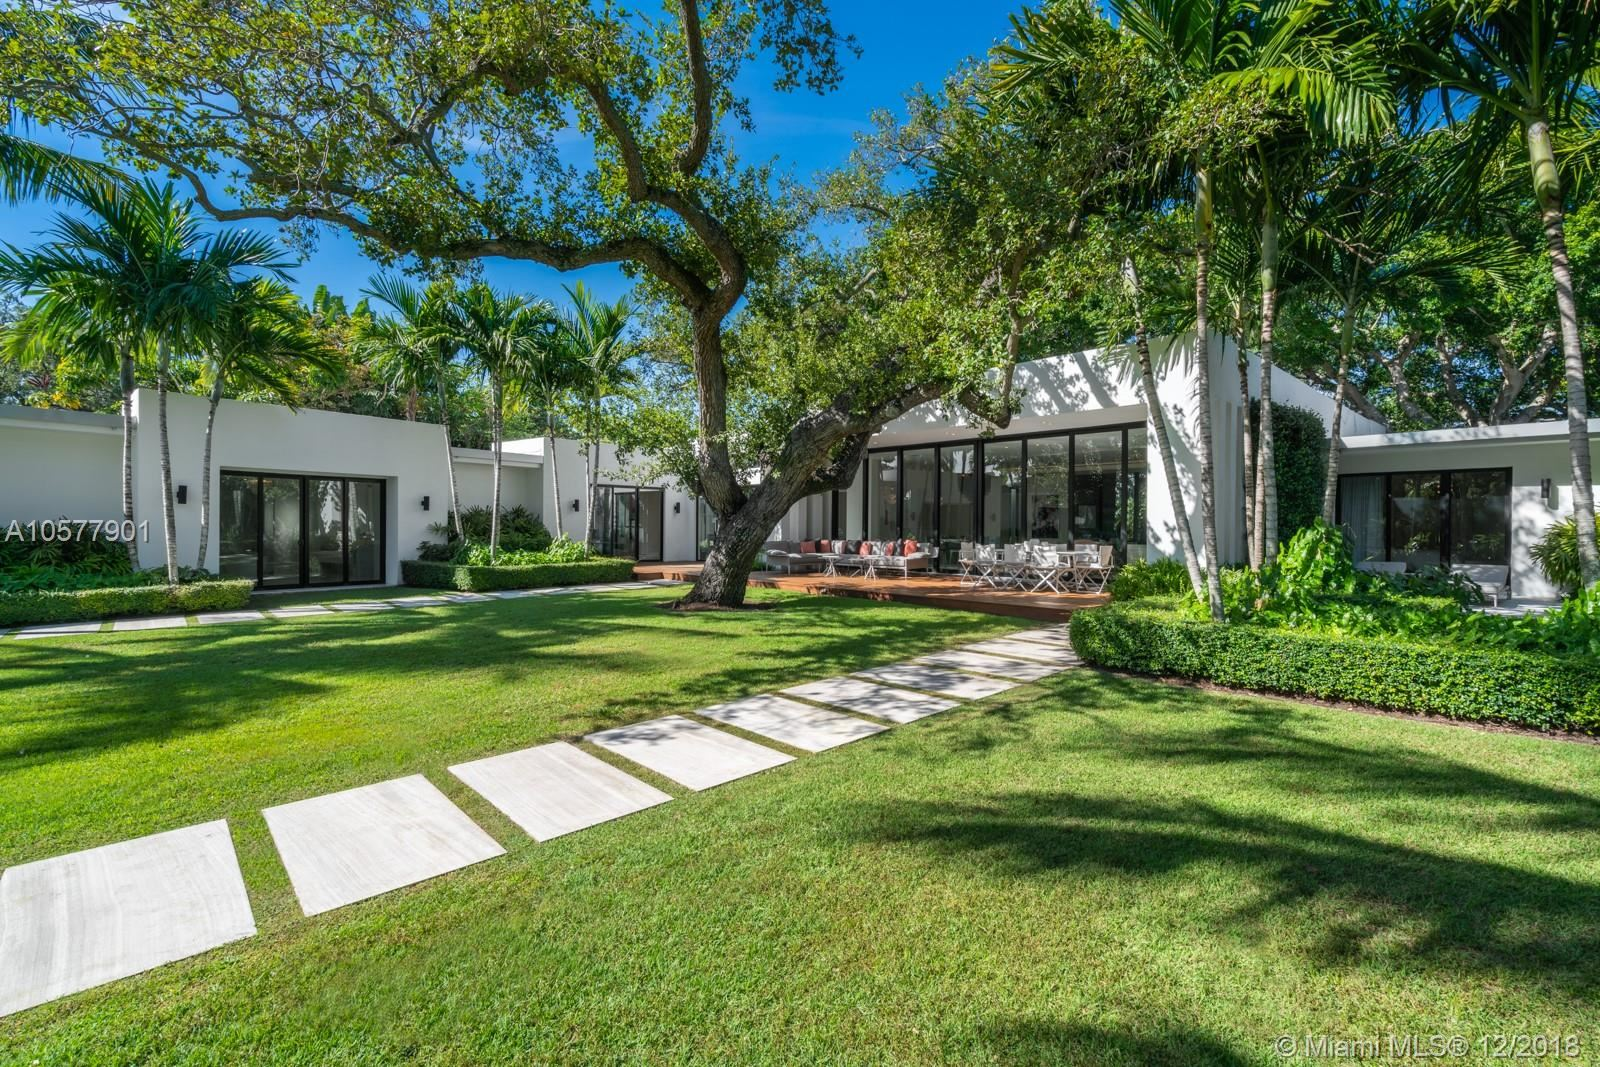 Photo 33 of Listing MLS a10577901 in 5045 Lakeview Drive Miami Beach FL 33140